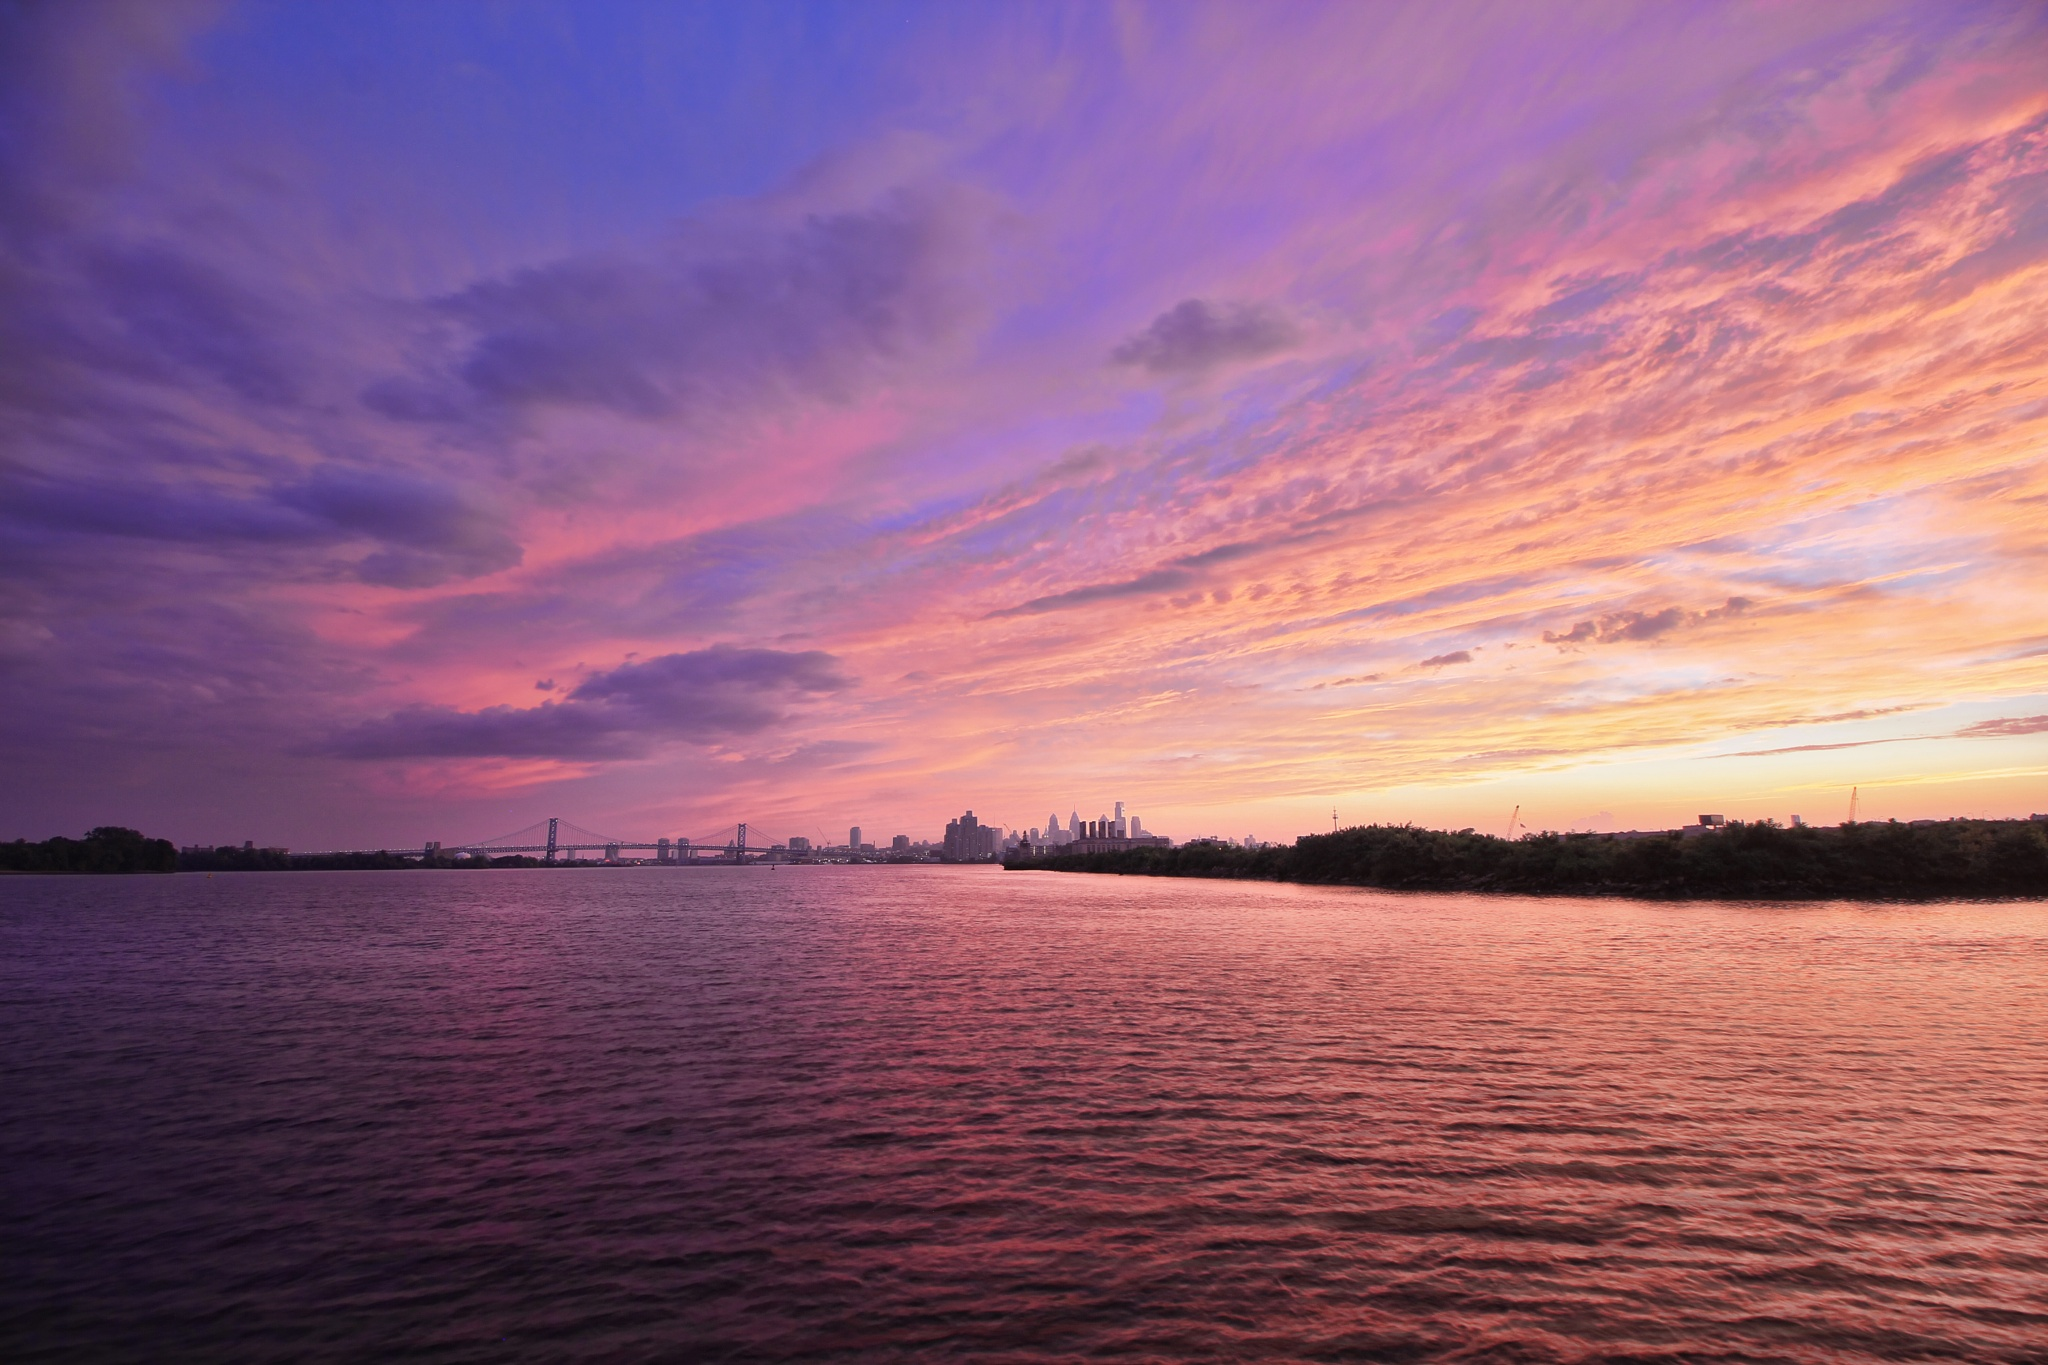 Sunset on the Delaware River by Ultravphotography